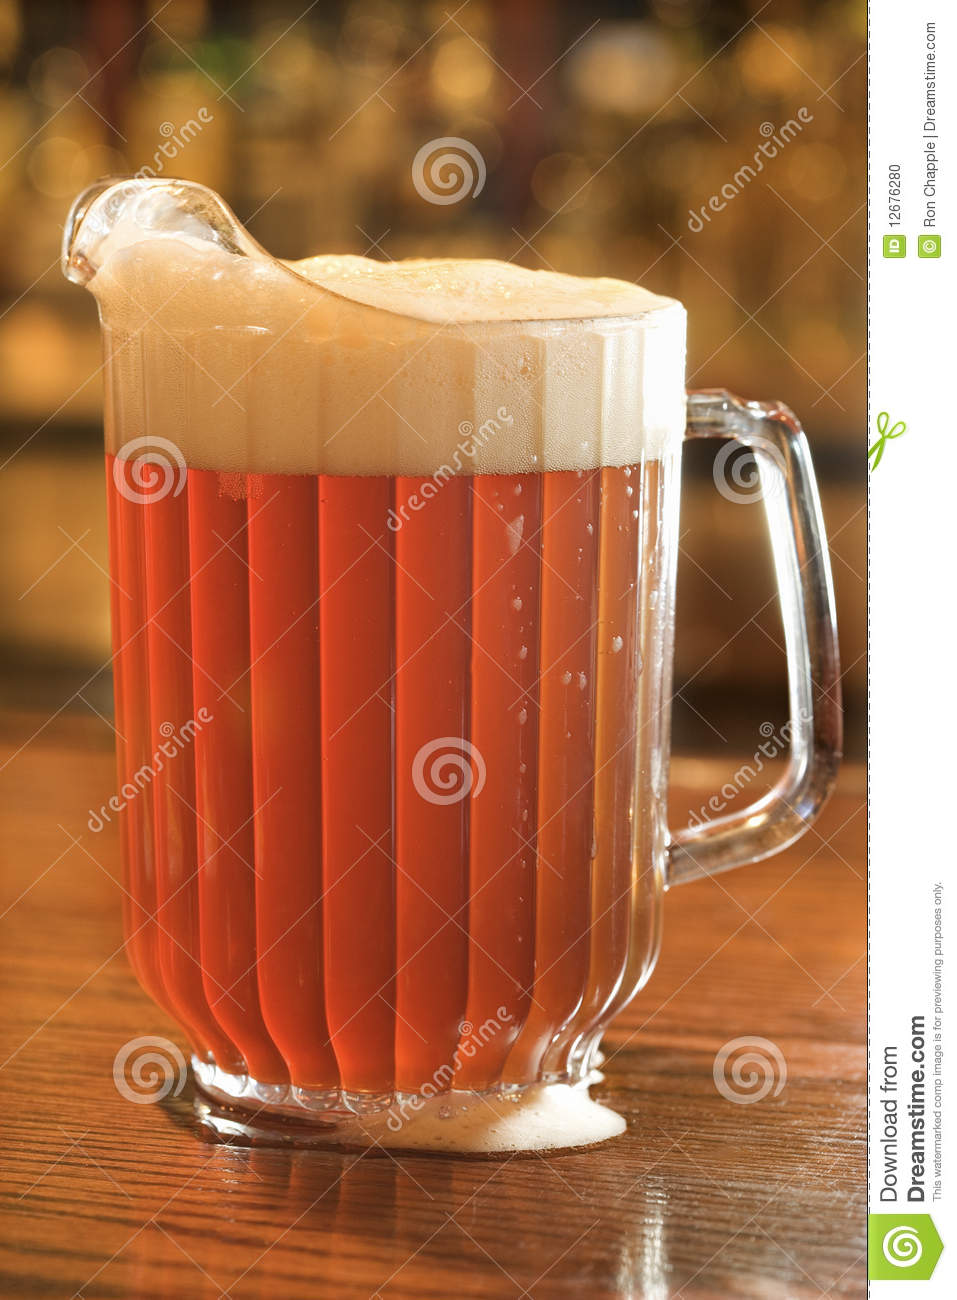 Full Pitcher Of Beer Stock Photo  Image 12676280